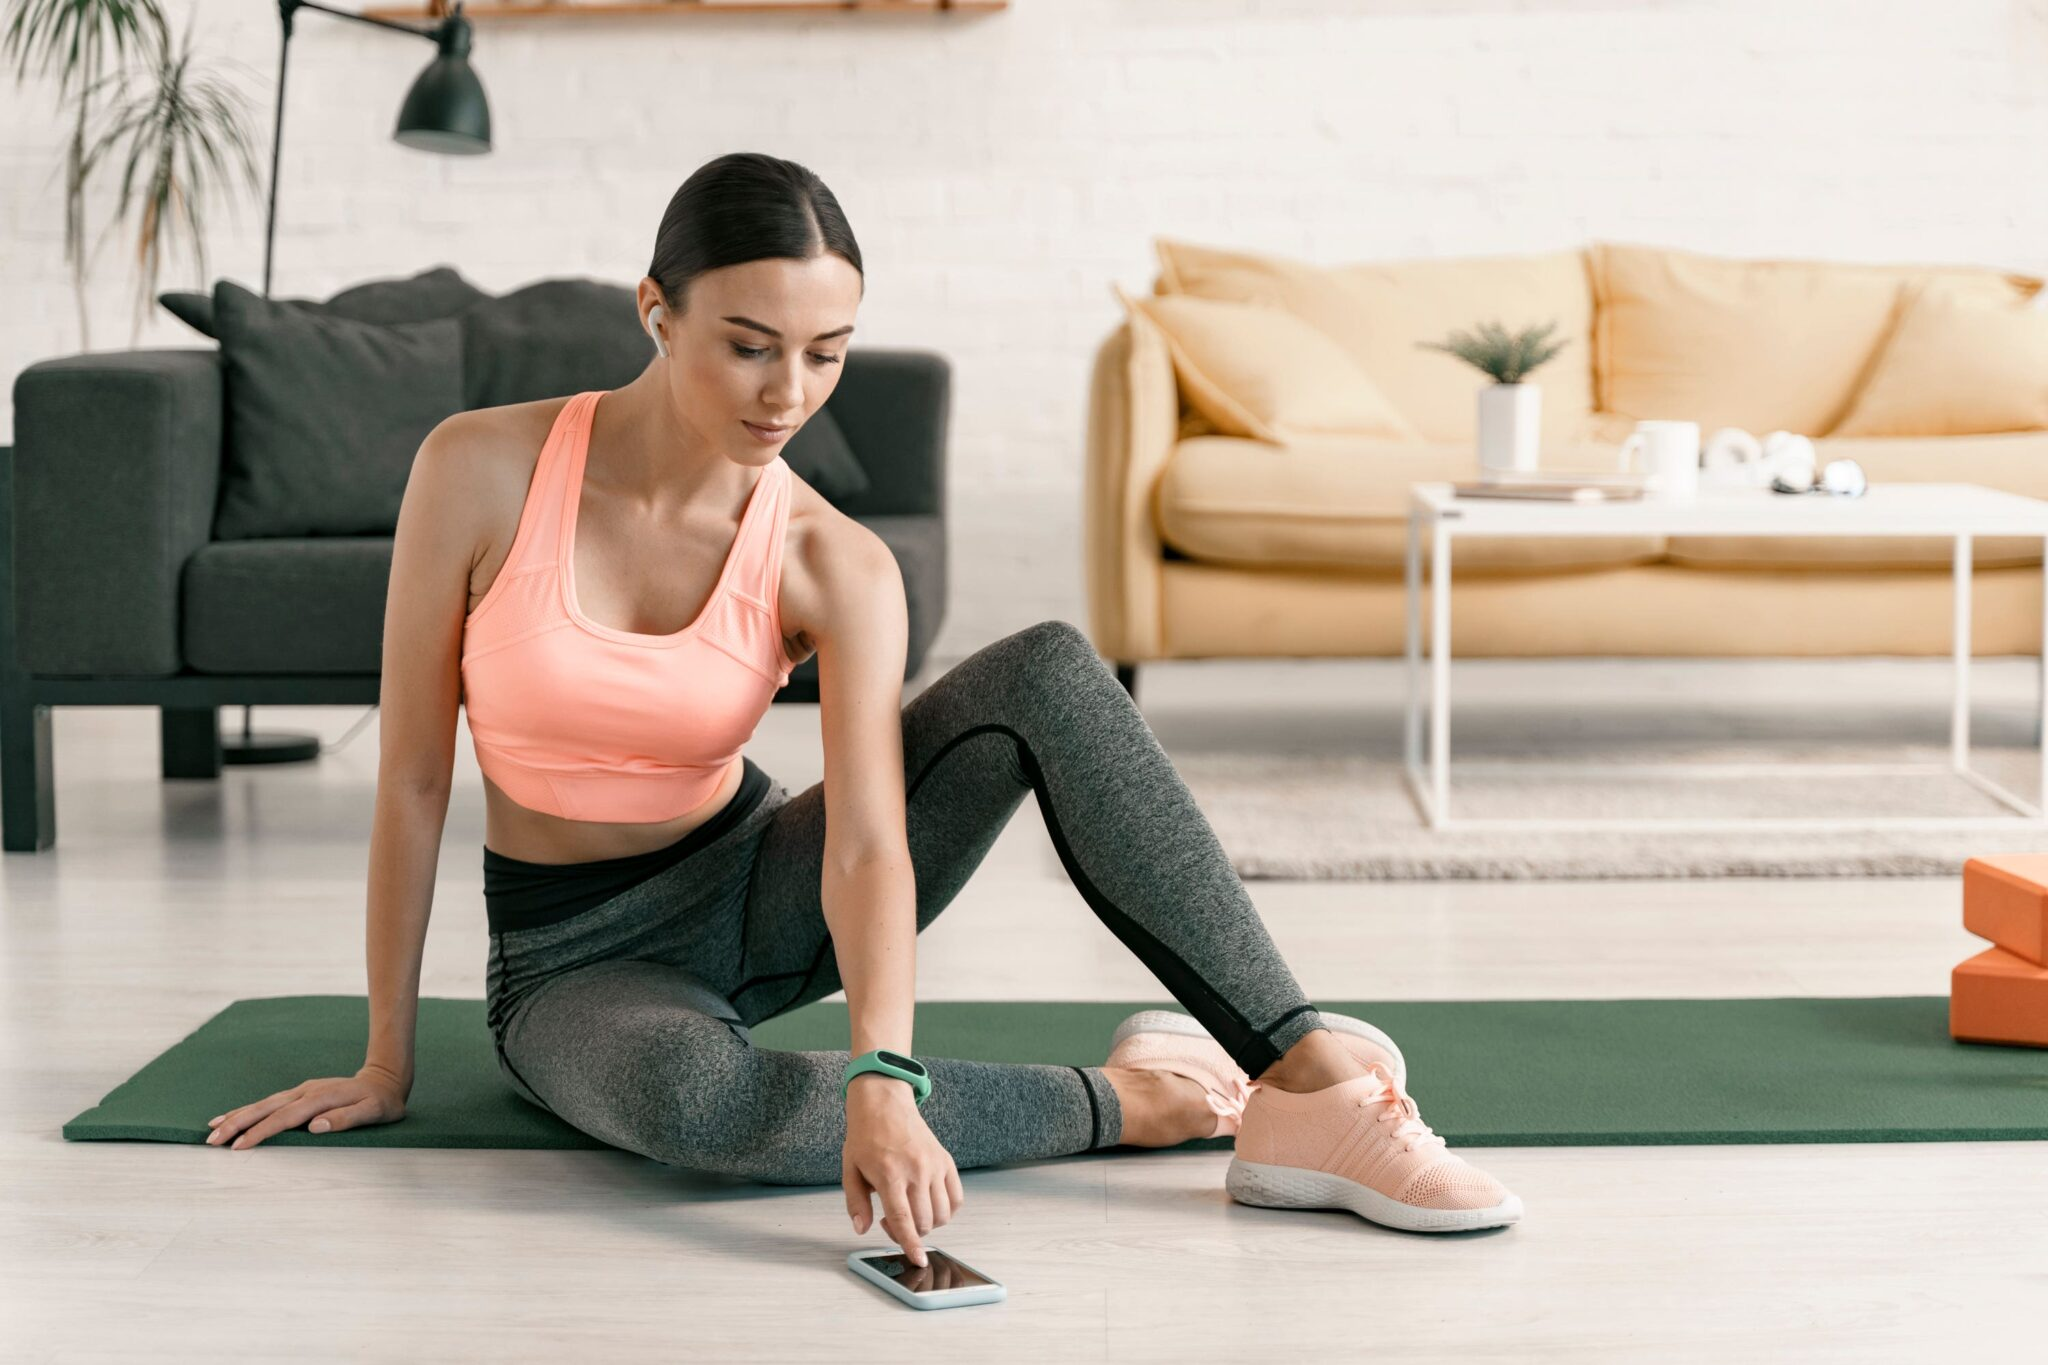 what are the Fitness Trends Of 2021?